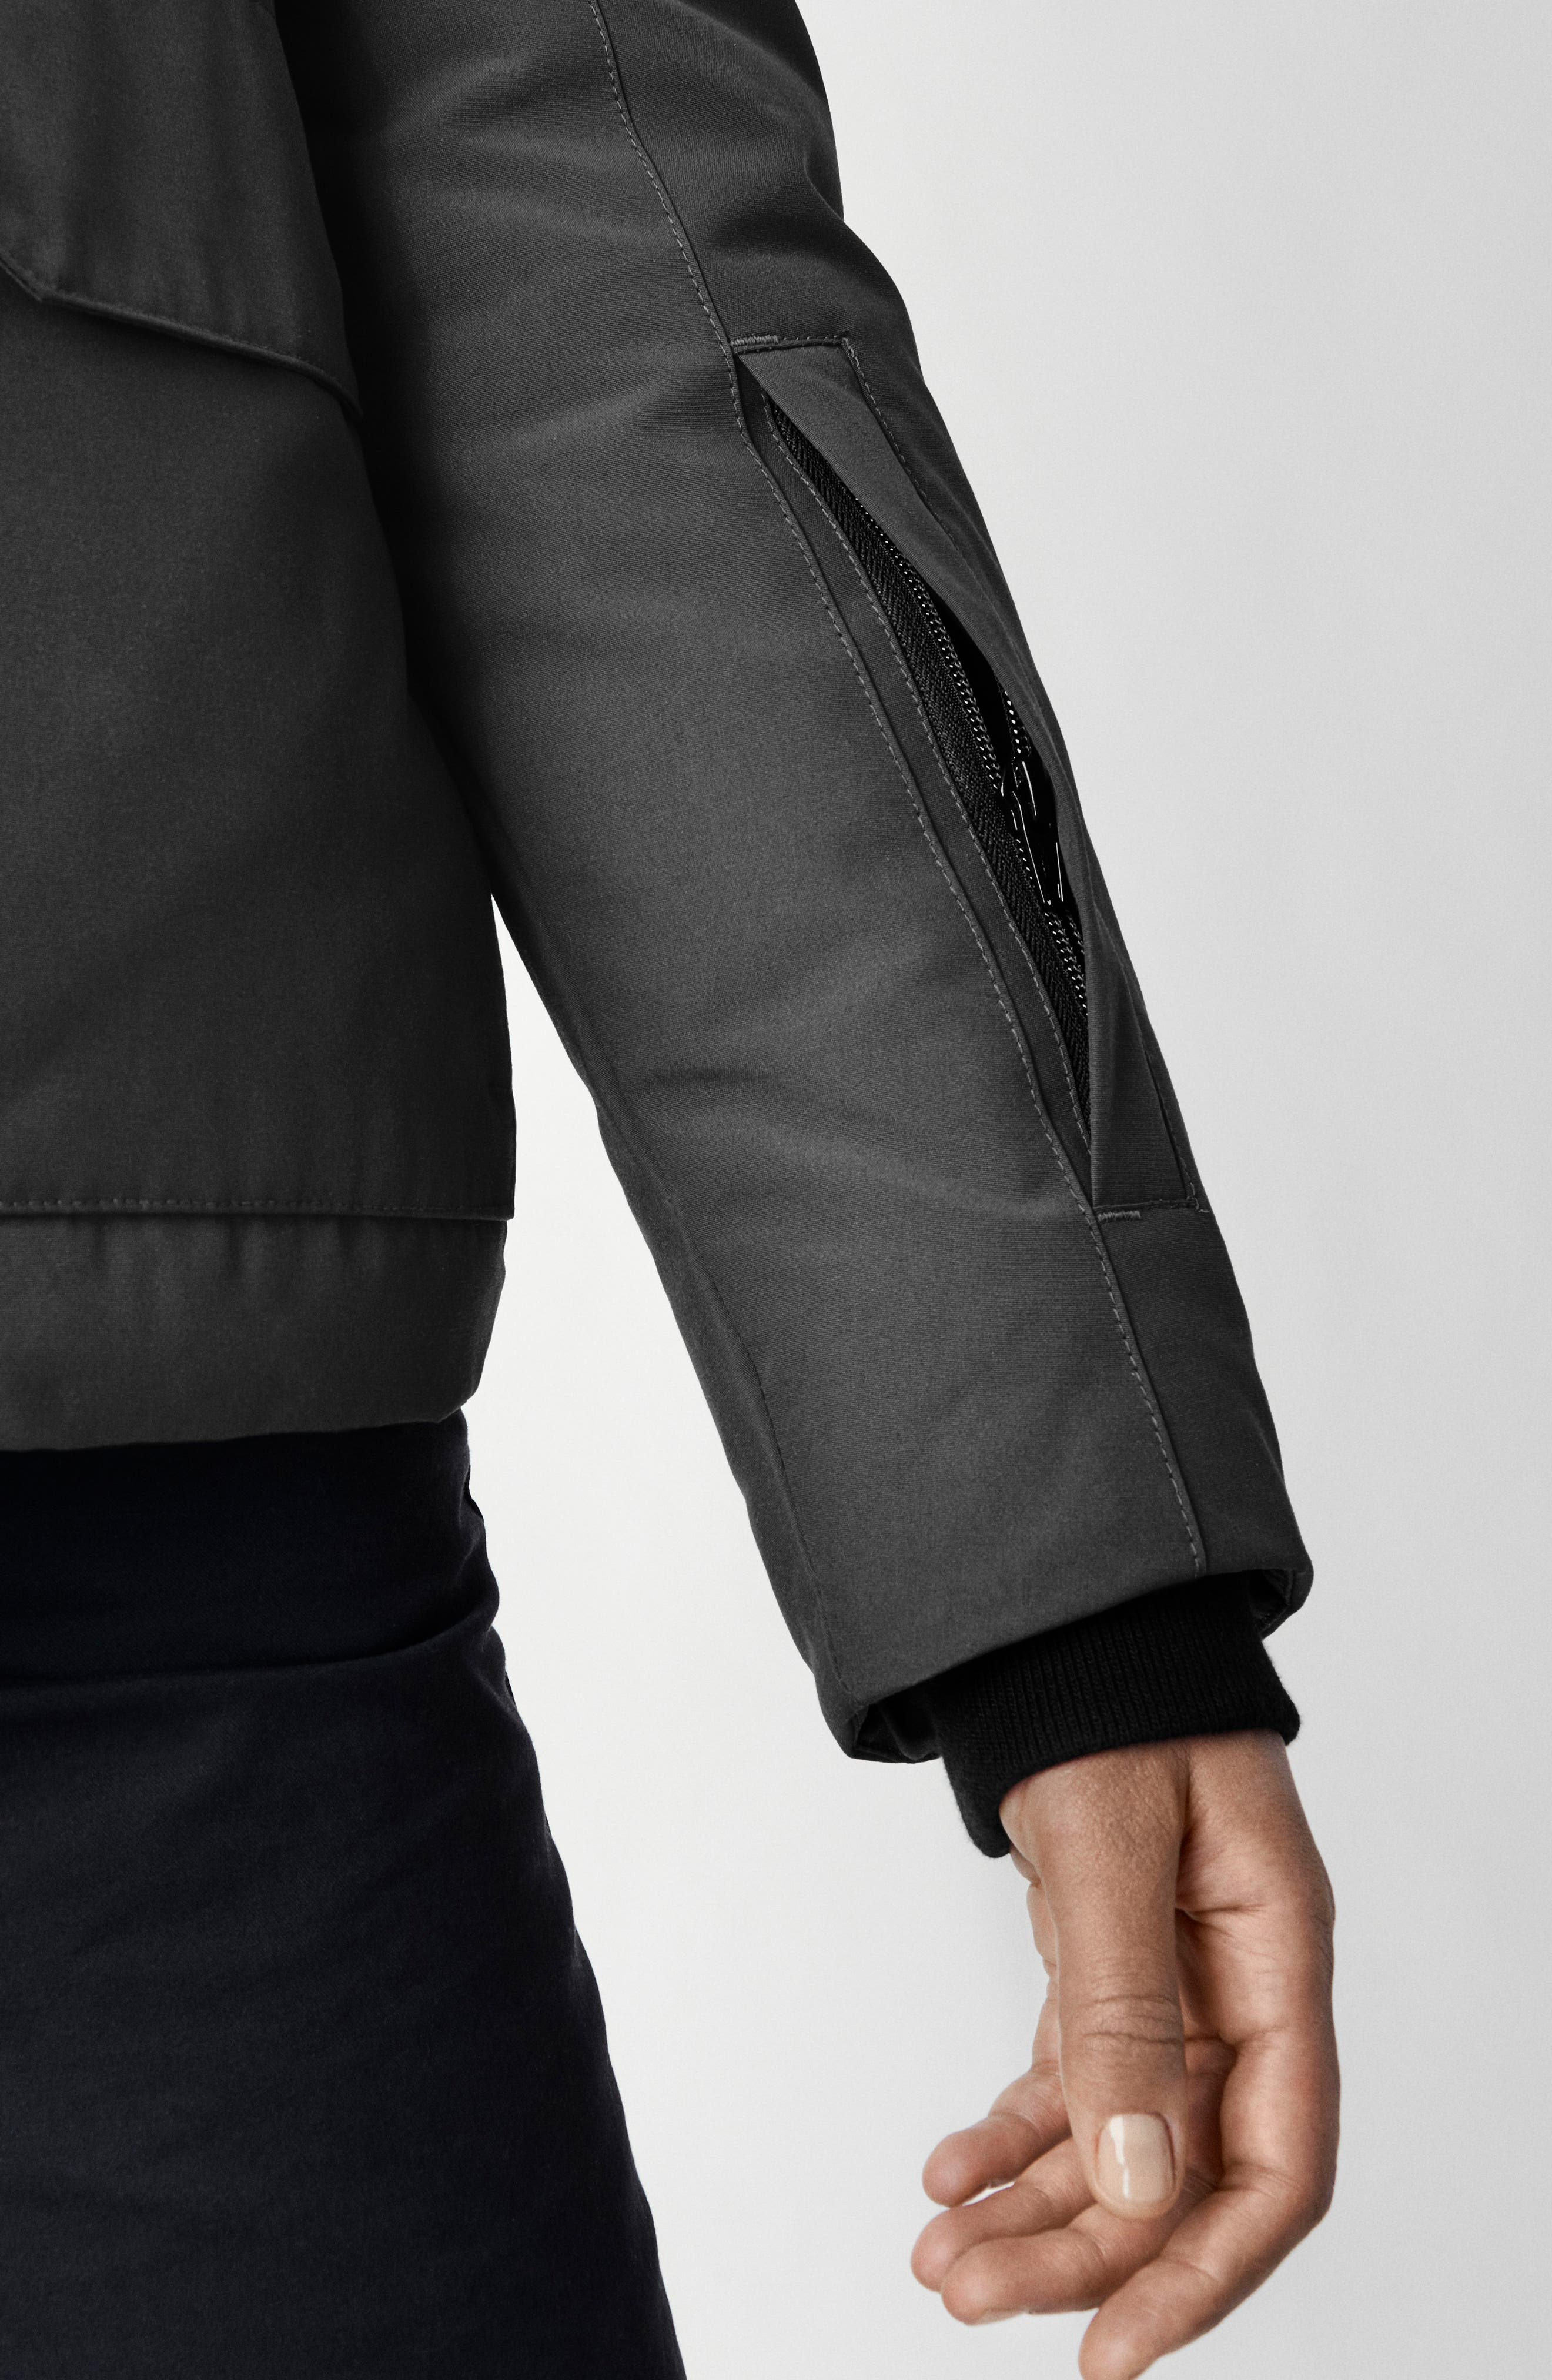 CANADA GOOSE, Blakely Water Resistant 625 Fill Power Down Parka, Alternate thumbnail 7, color, GRAPHITE